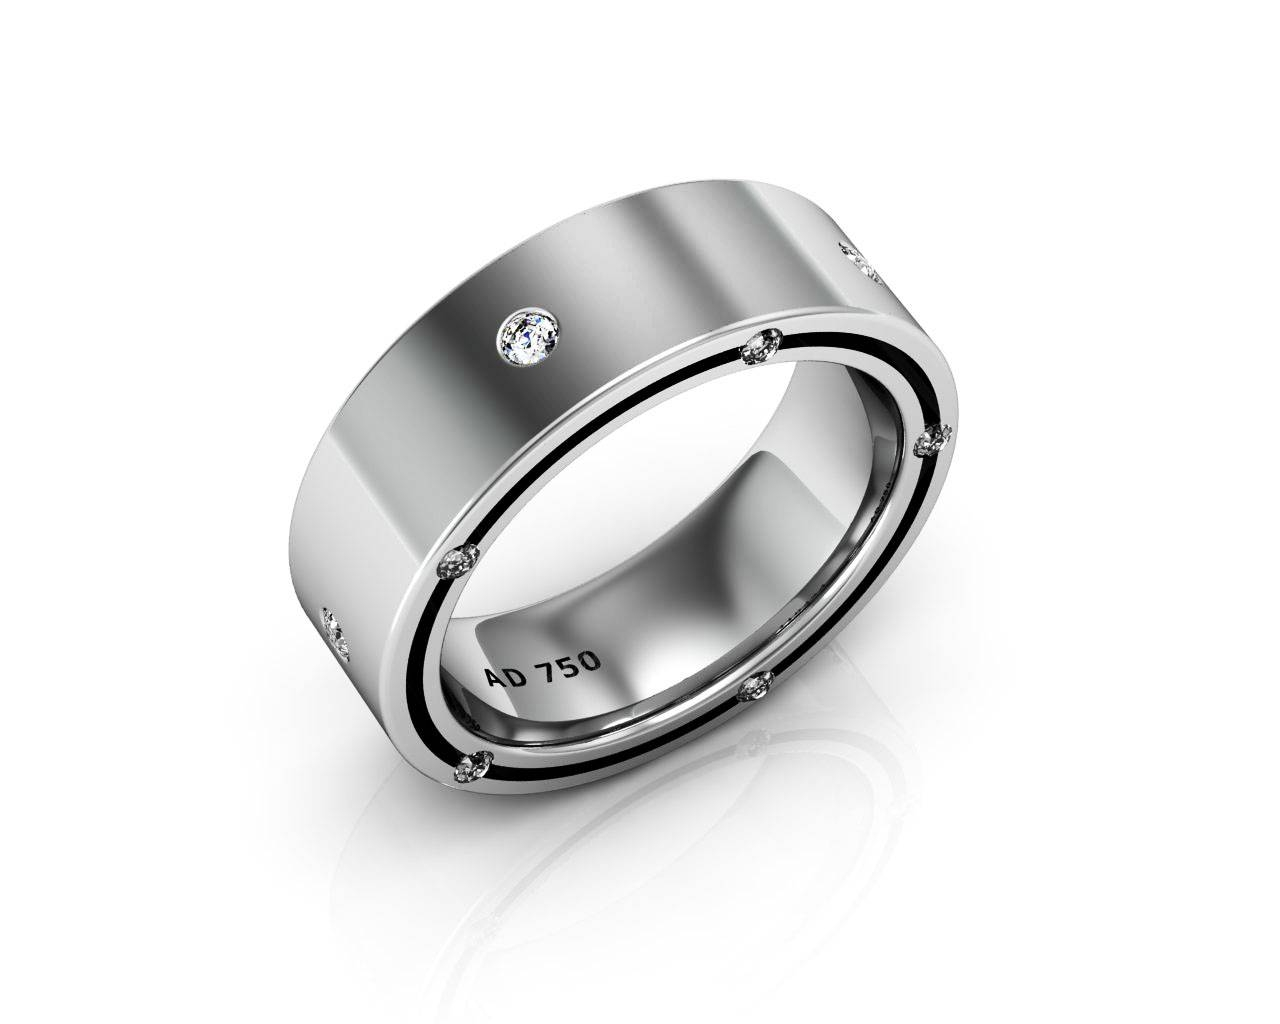 Stone Diamond White Gold Men's Wedding Bands Pertaining To White Gold Male Wedding Rings (View 14 of 15)